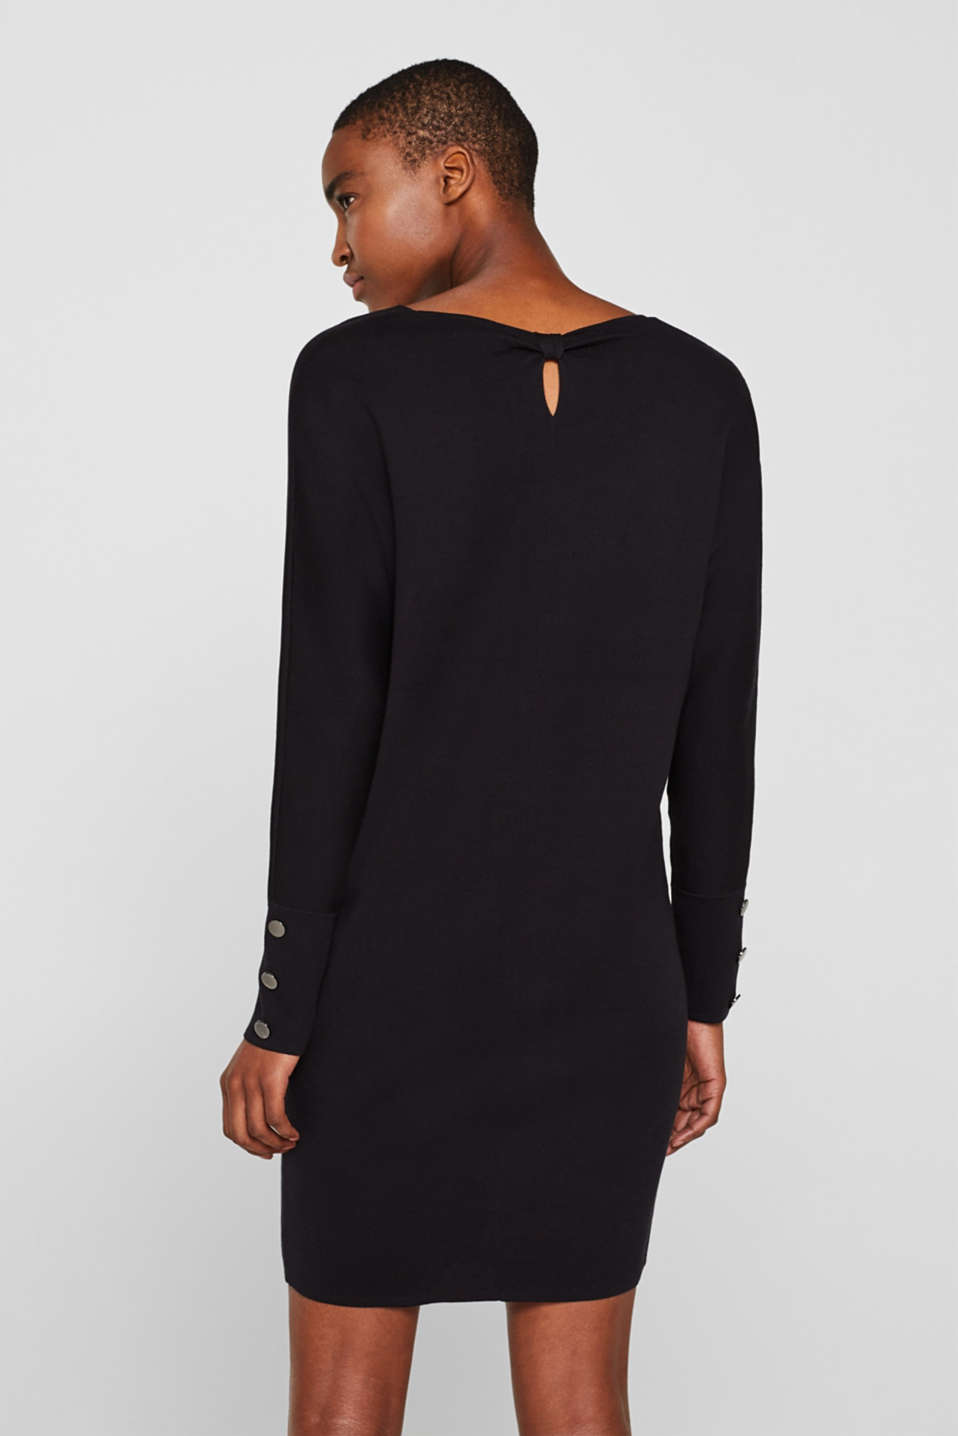 Knit dress with a bow, stretch cotton, BLACK, detail image number 2